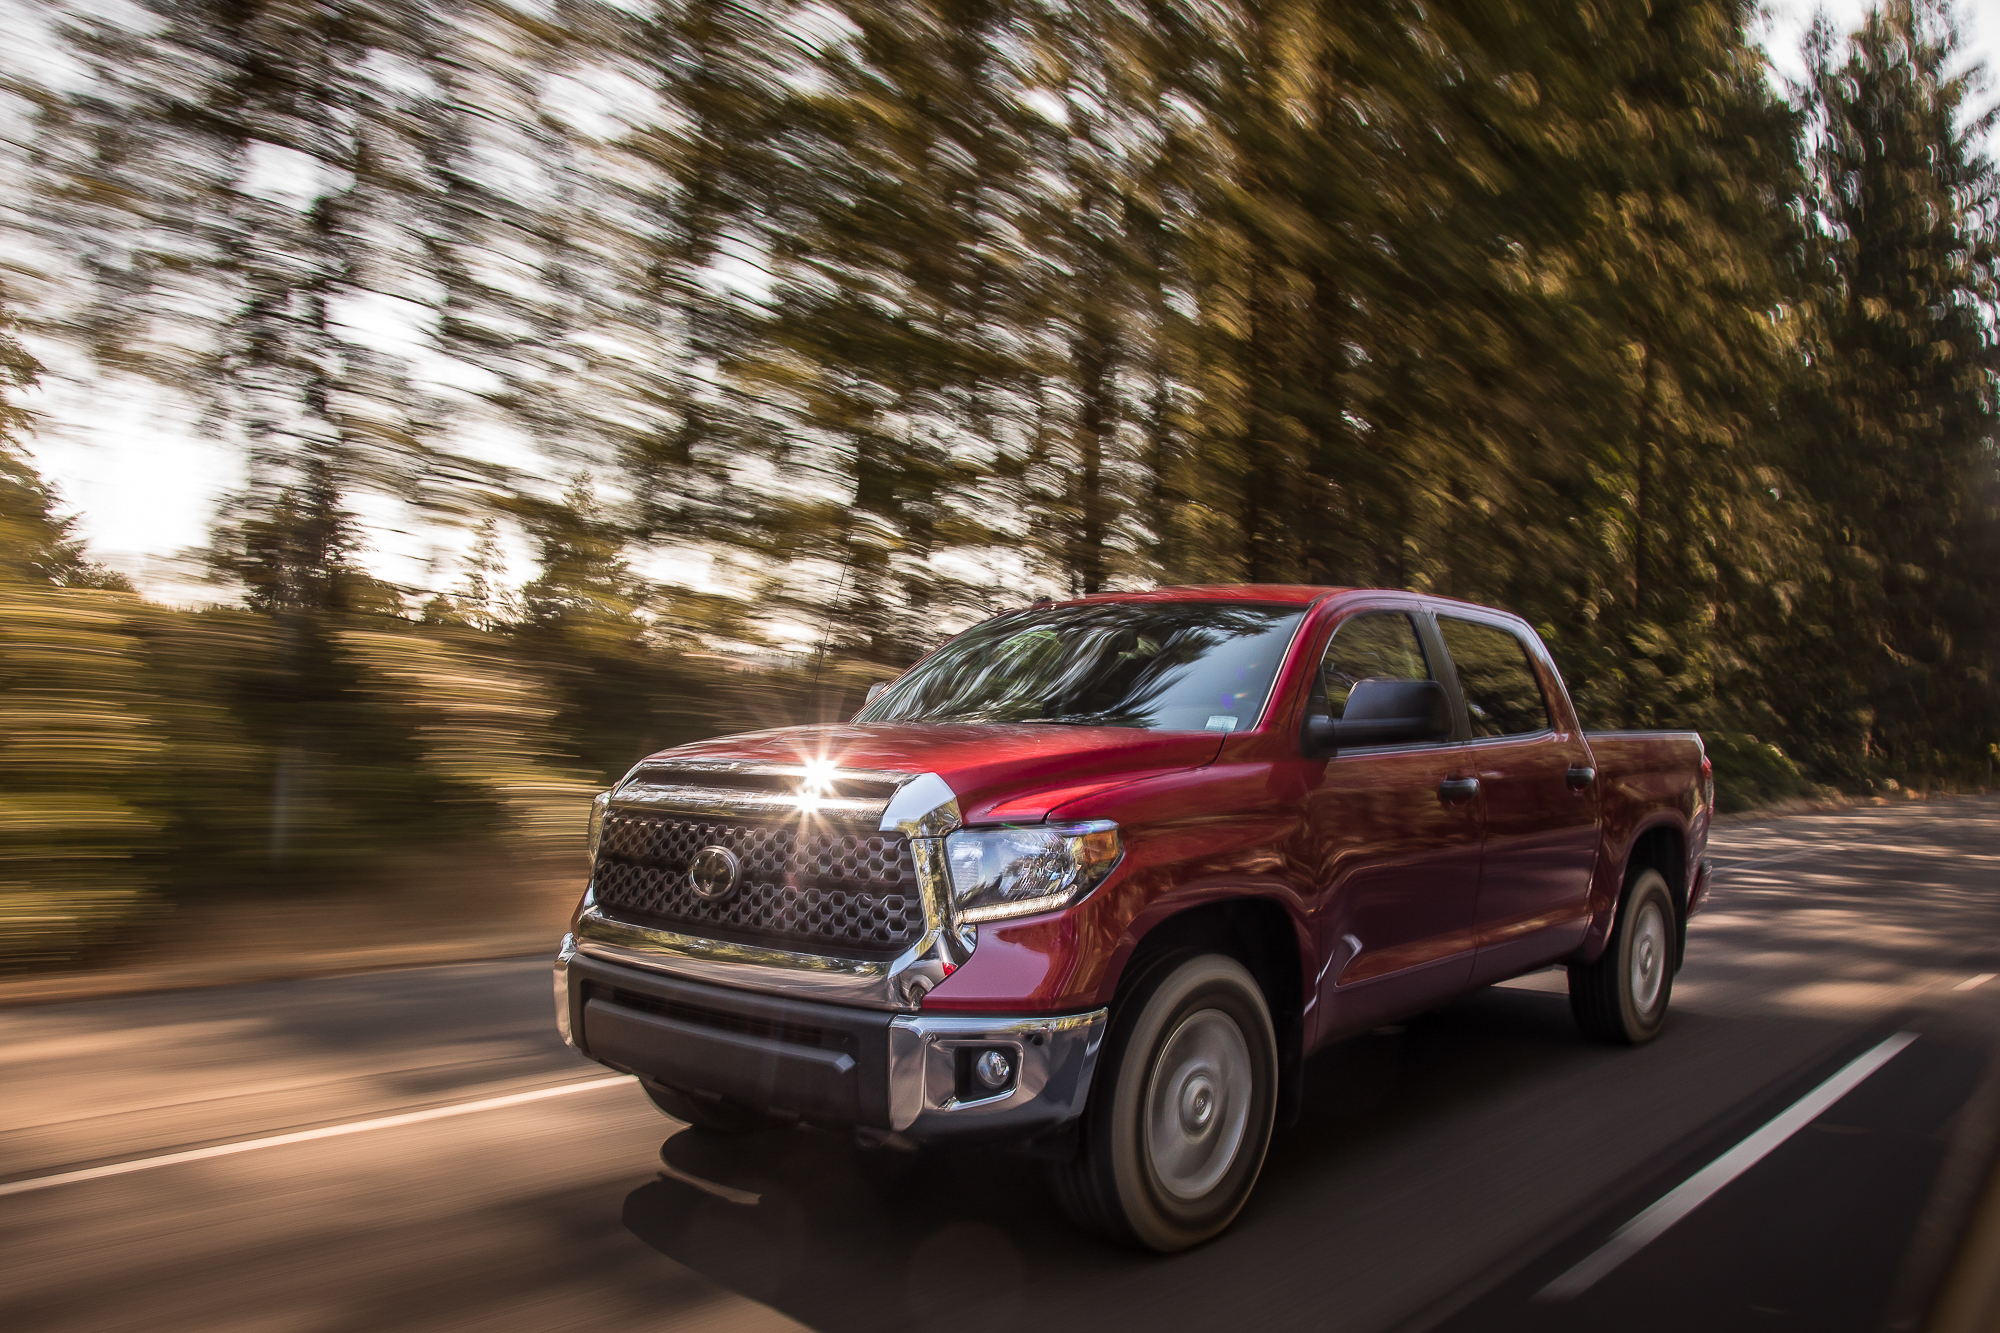 05-toyota-tundra-2018-angle--dynamic--exterior--front--red.jpg